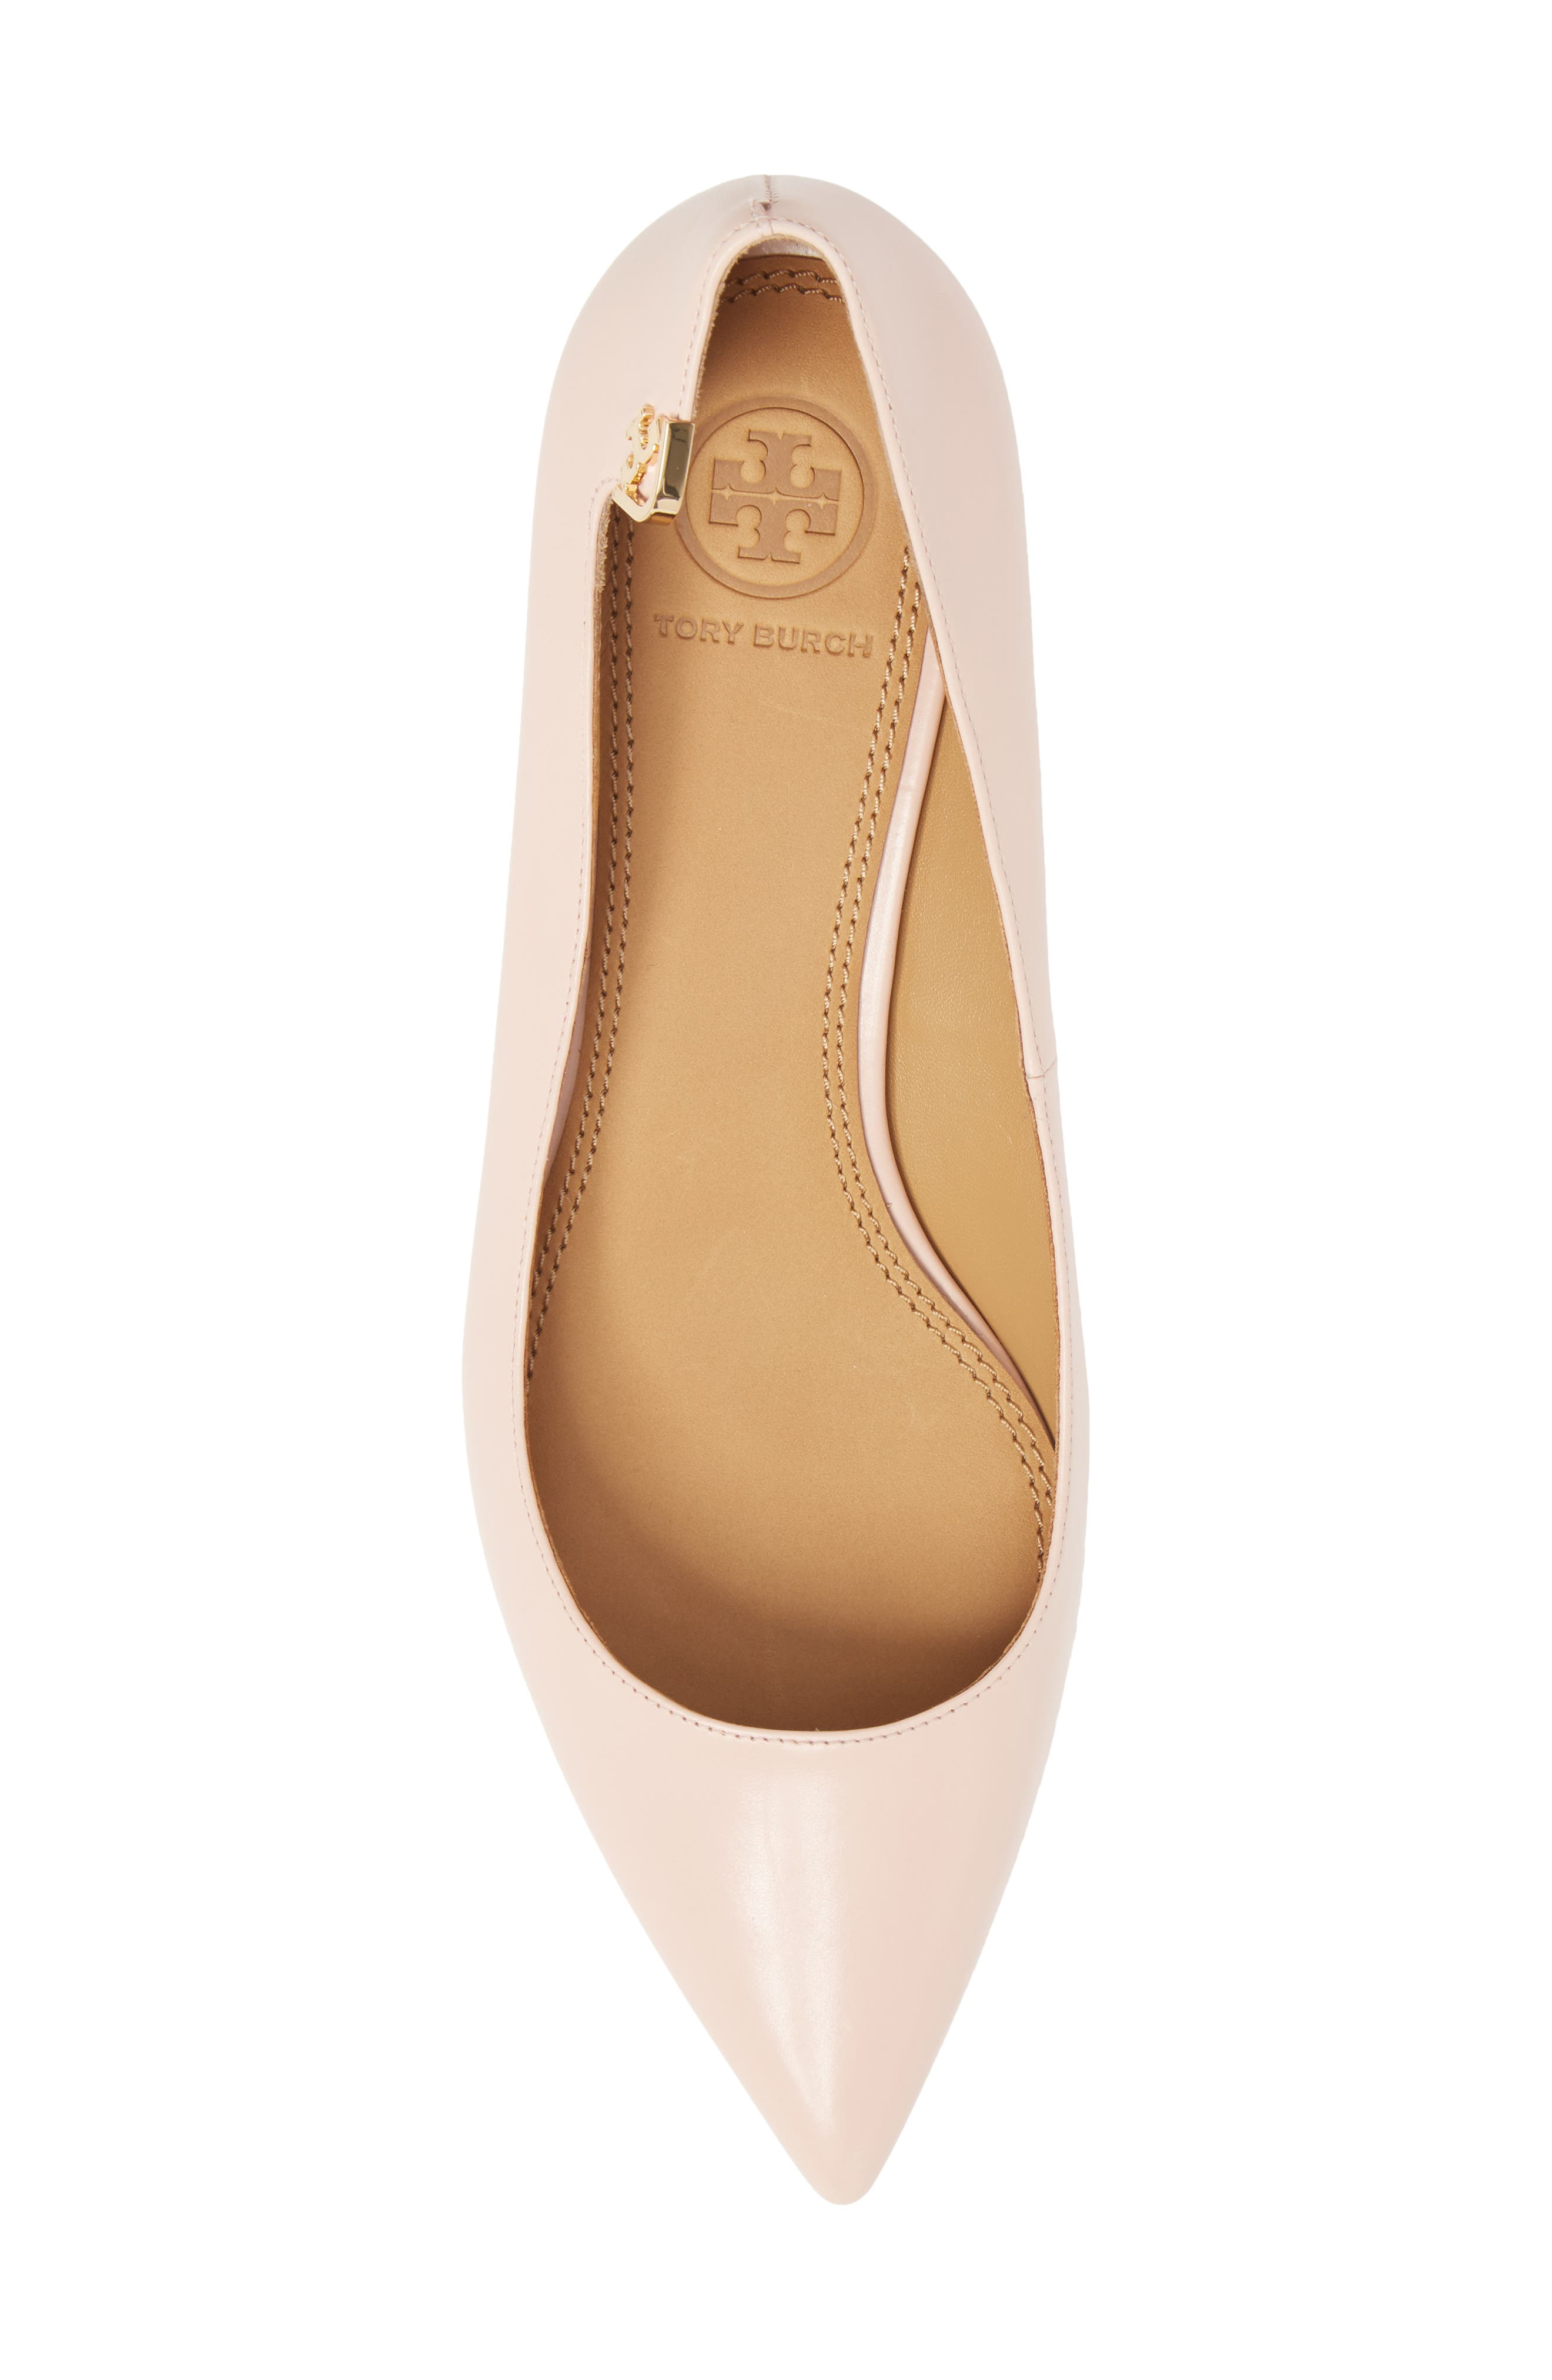 Elizabeth Pointy Toe Pump,                             Alternate thumbnail 5, color,                             Sea Shell Pink